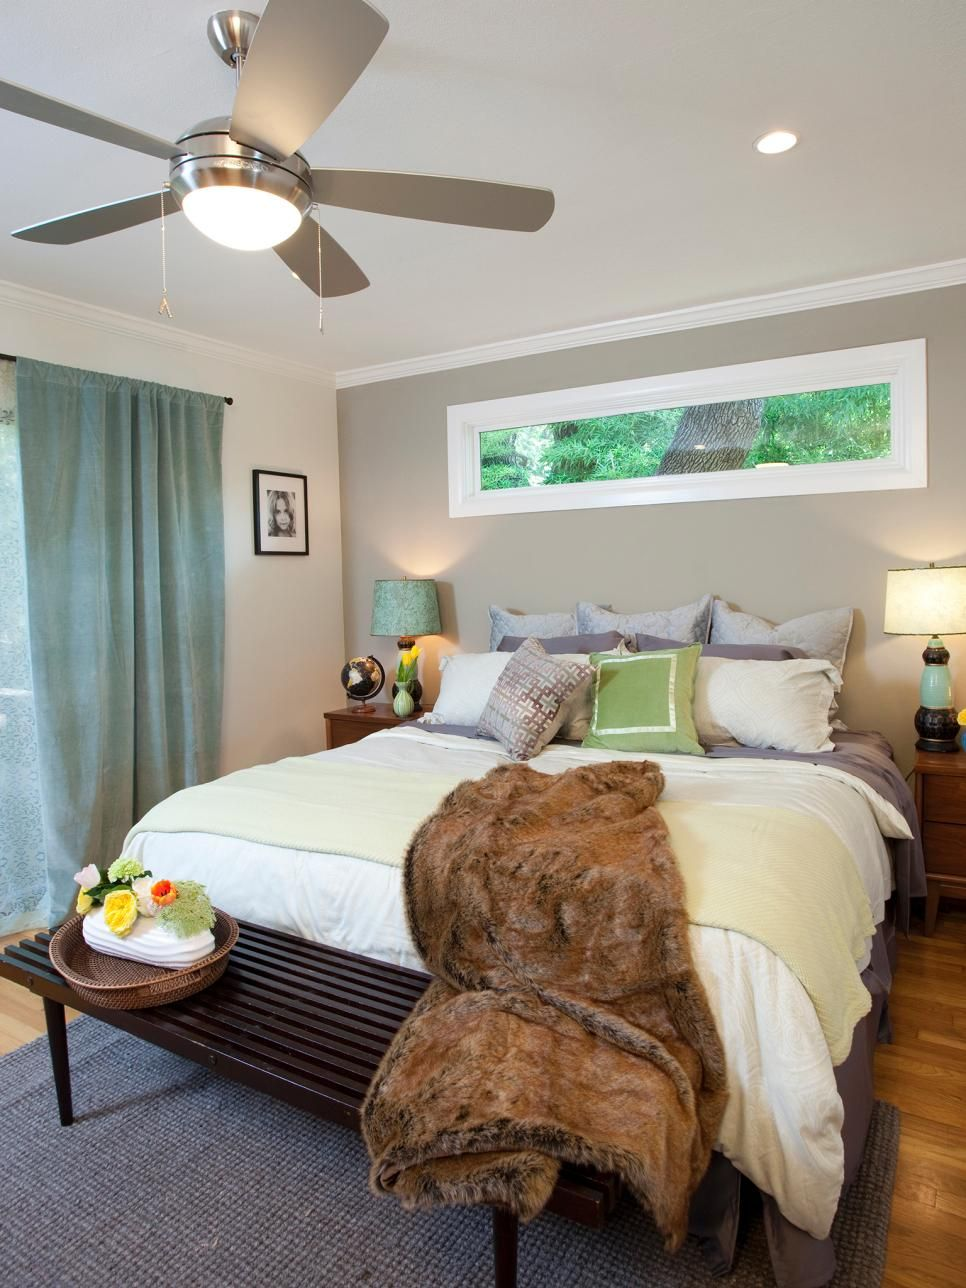 Cool Neutral Paint Colors And Bedding Provide A Tranquil Canvas For This Modern Bedroom Chrome Ceiling Fan Seafoam Green Curtains Faux Fur Throw